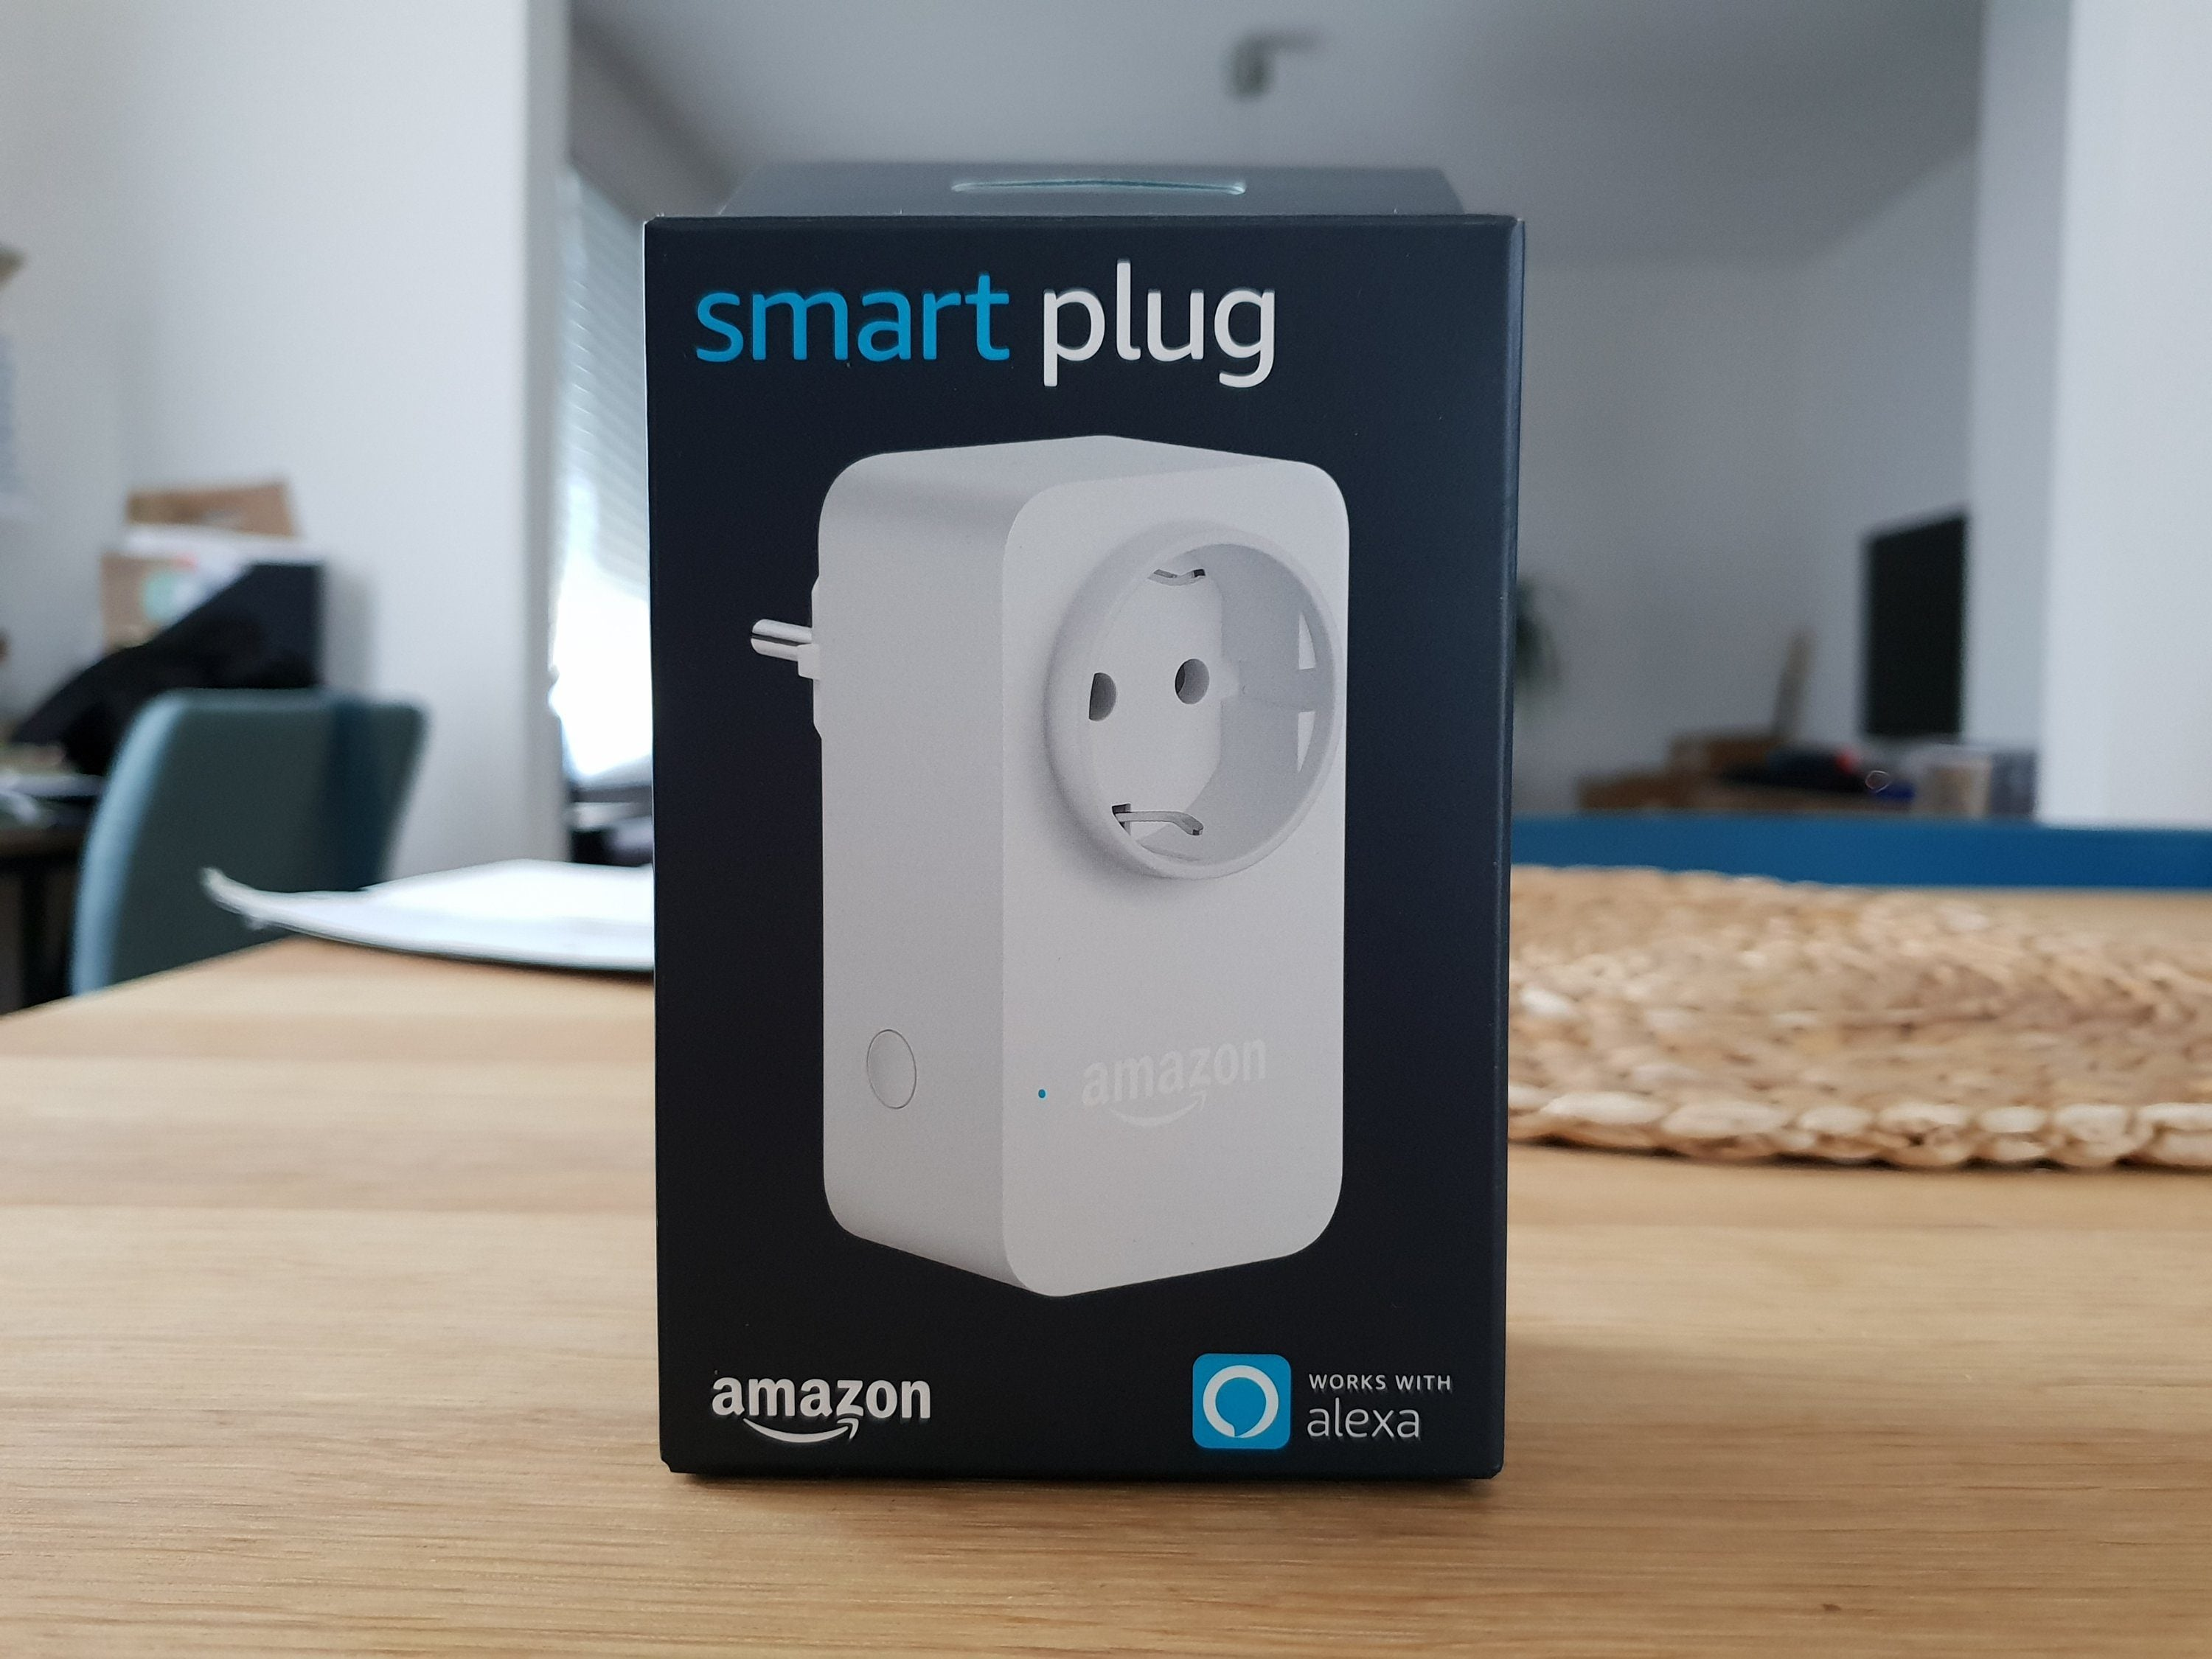 Amazon Smart Plug WLAN-Steckdose im Test 3 techboys.de • smarte News, auf den Punkt! Amazon Smart Plug WLAN-Steckdose im Test